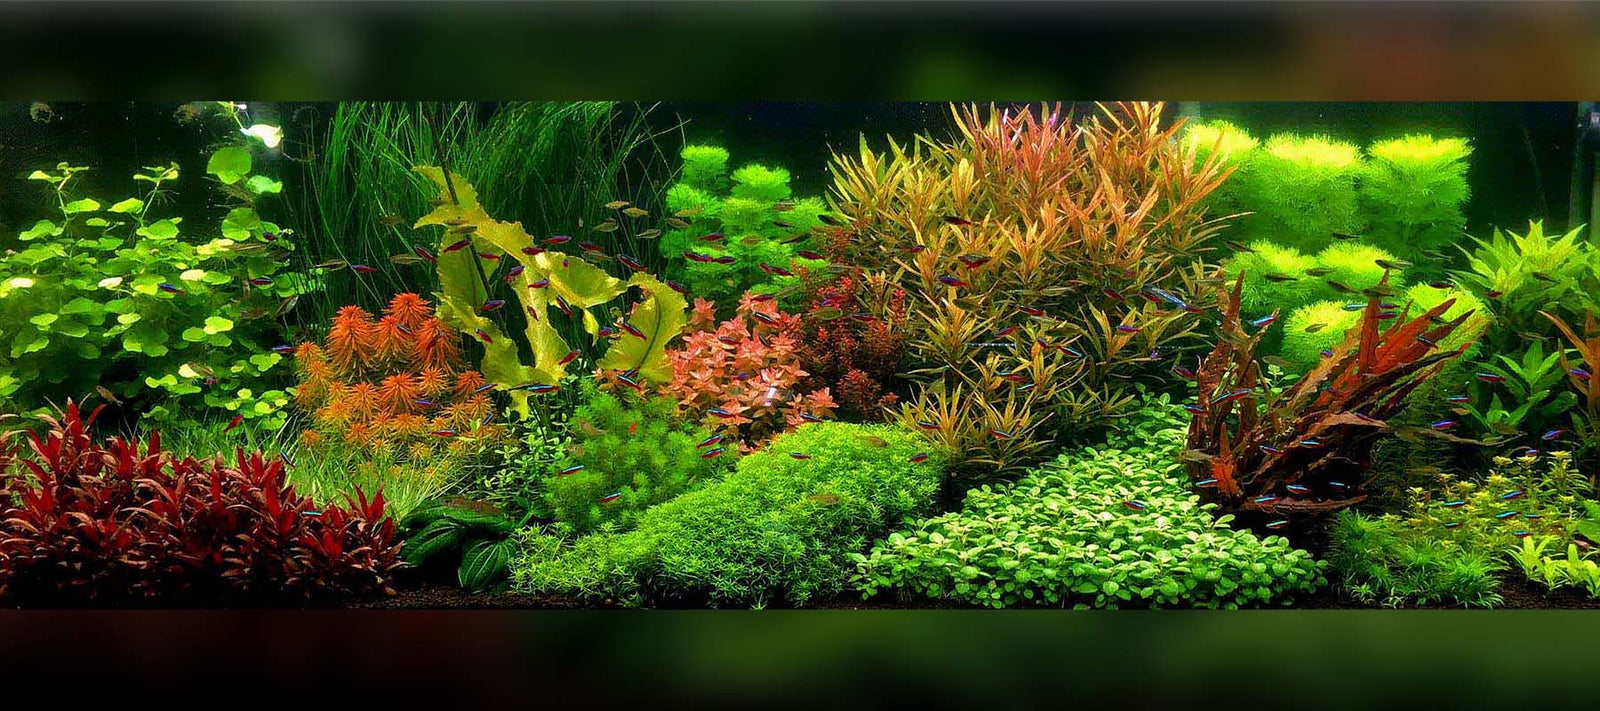 Aquascape Styles And Ideas Tagged Dutch Aquascape The 2hr Aquarist